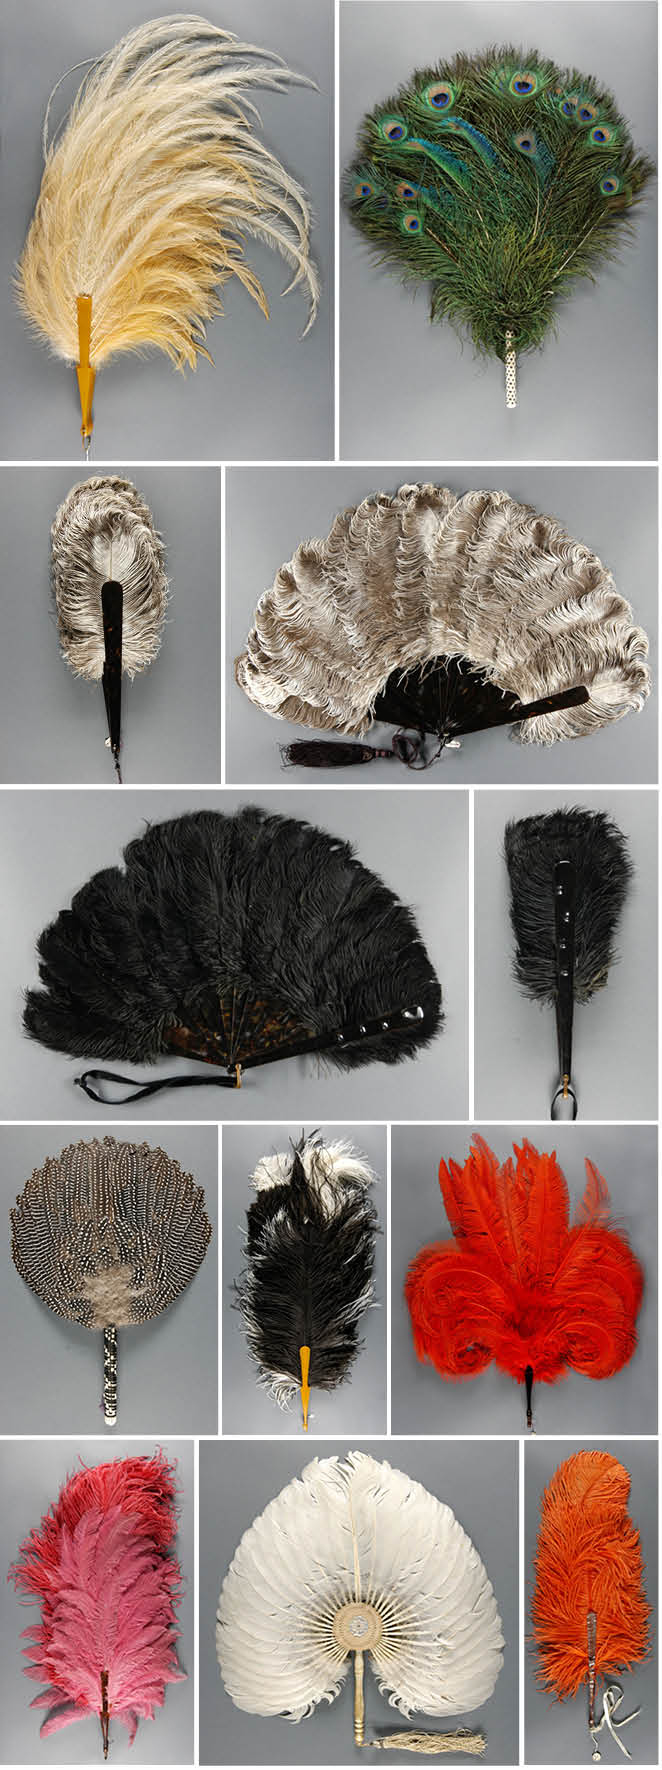 Feathered_Fans_Philadelphia_Museum_of_Art